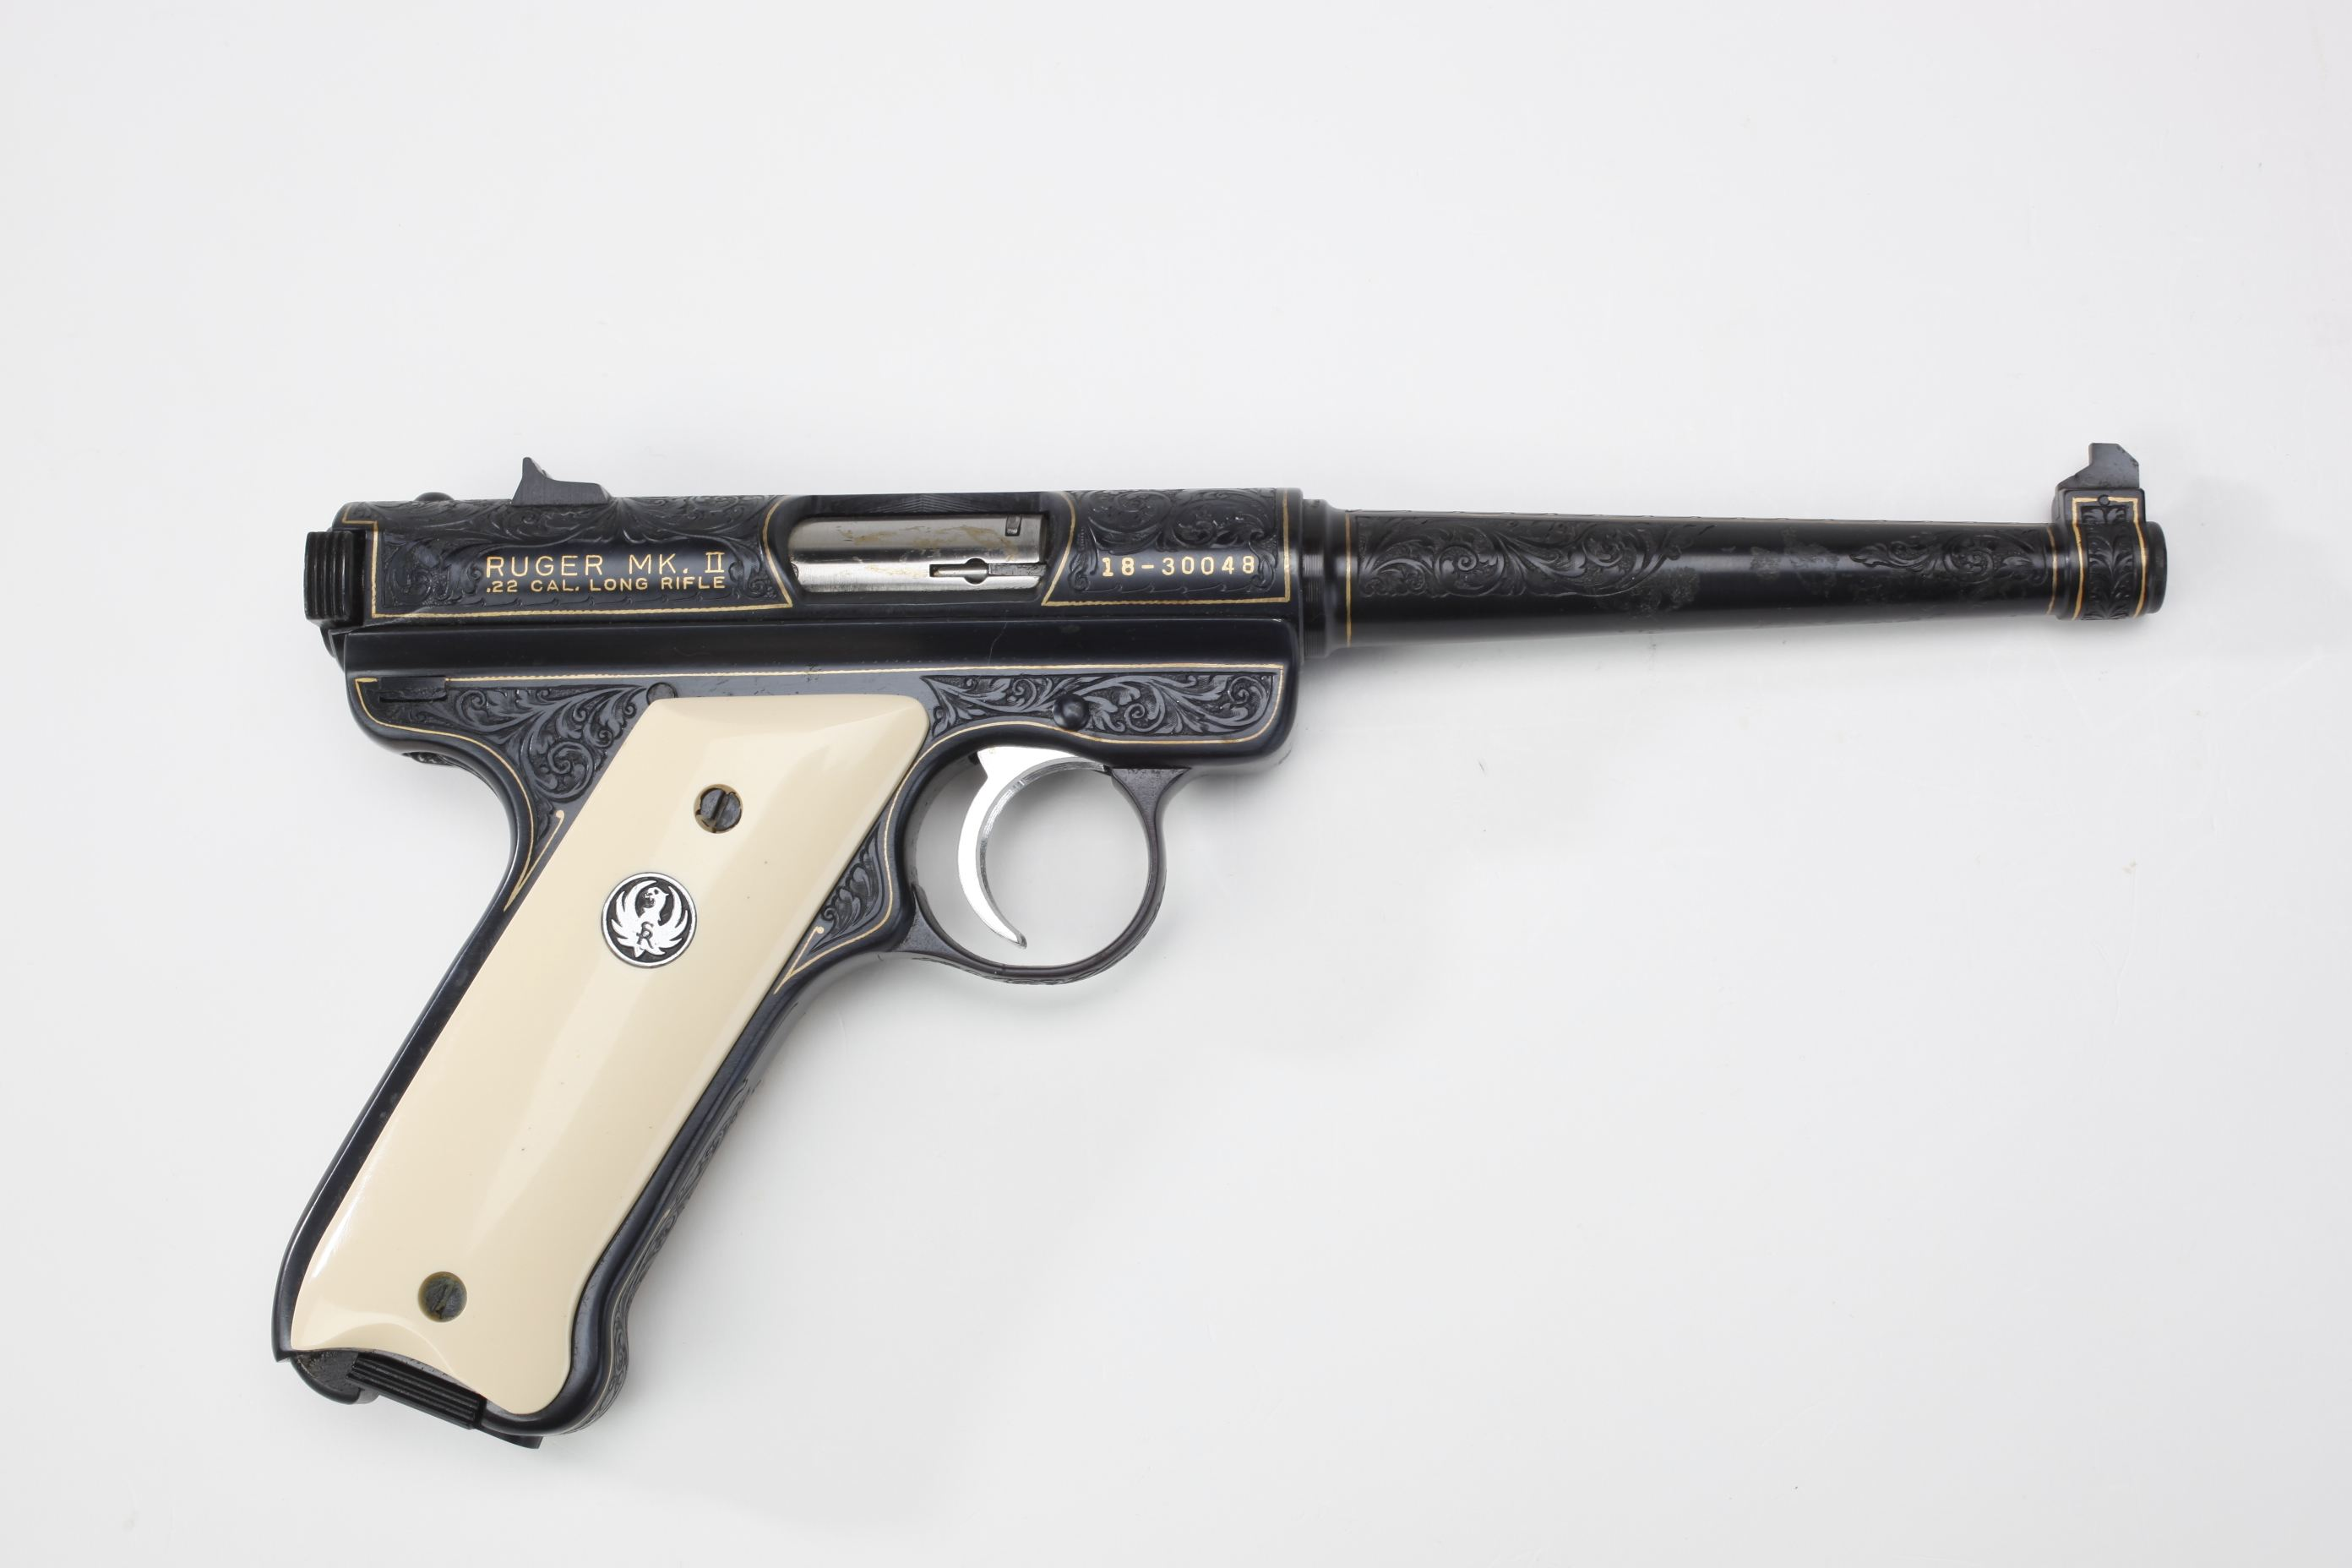 Sturm, Ruger & Co. Mark II Target Model Semi-Automatic Pistol